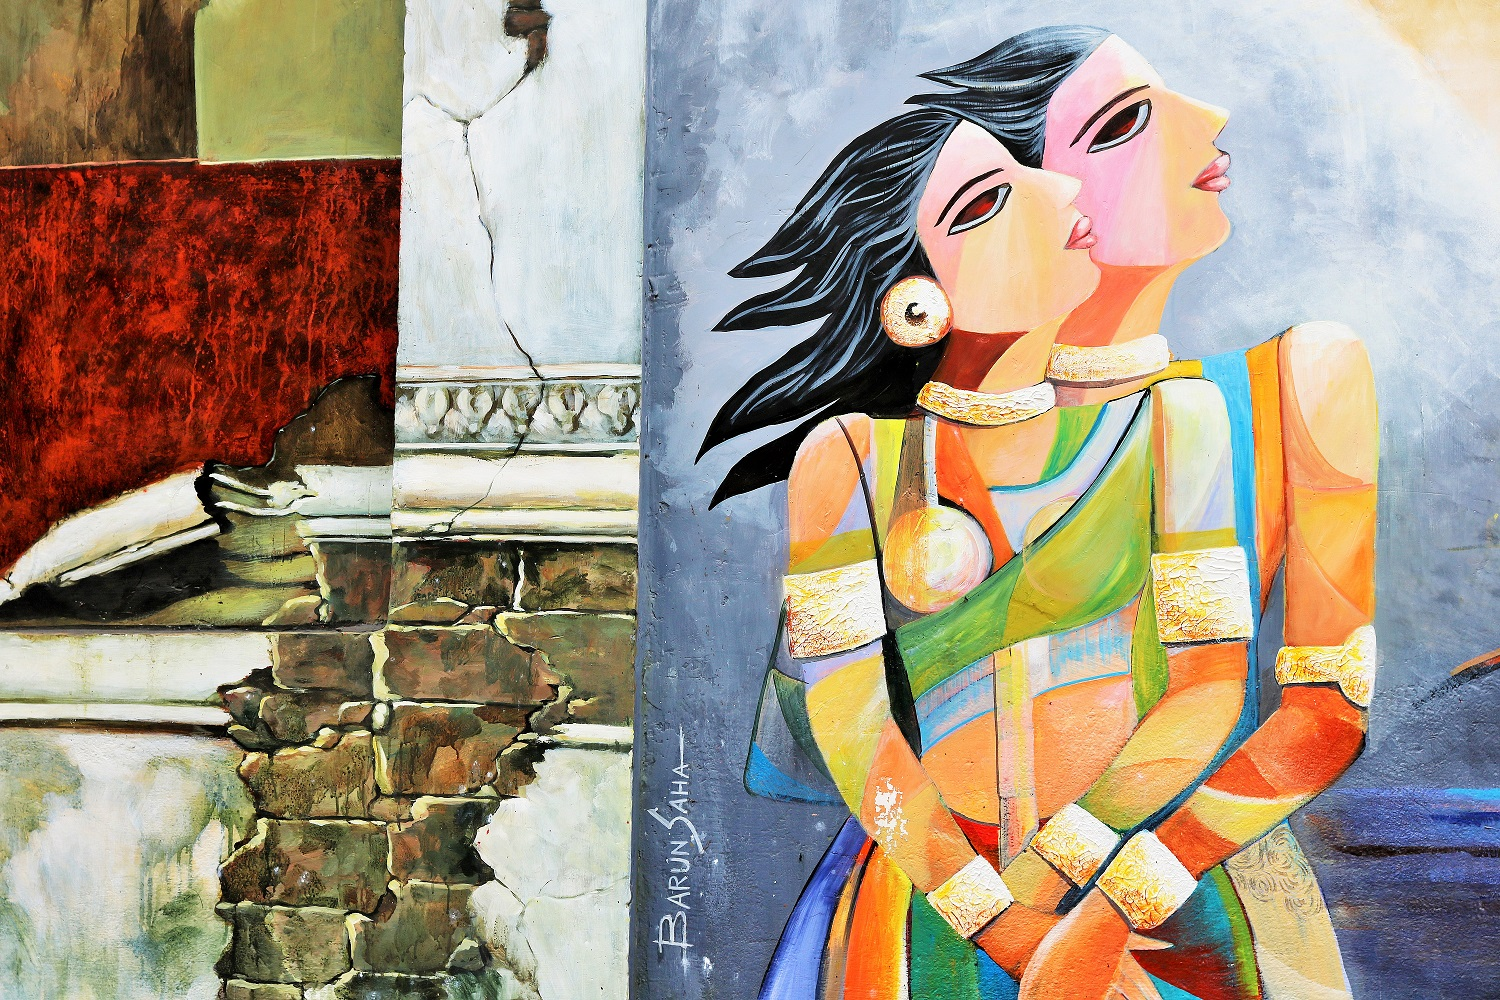 Kolkata Street Art Festival by Berger Paints India